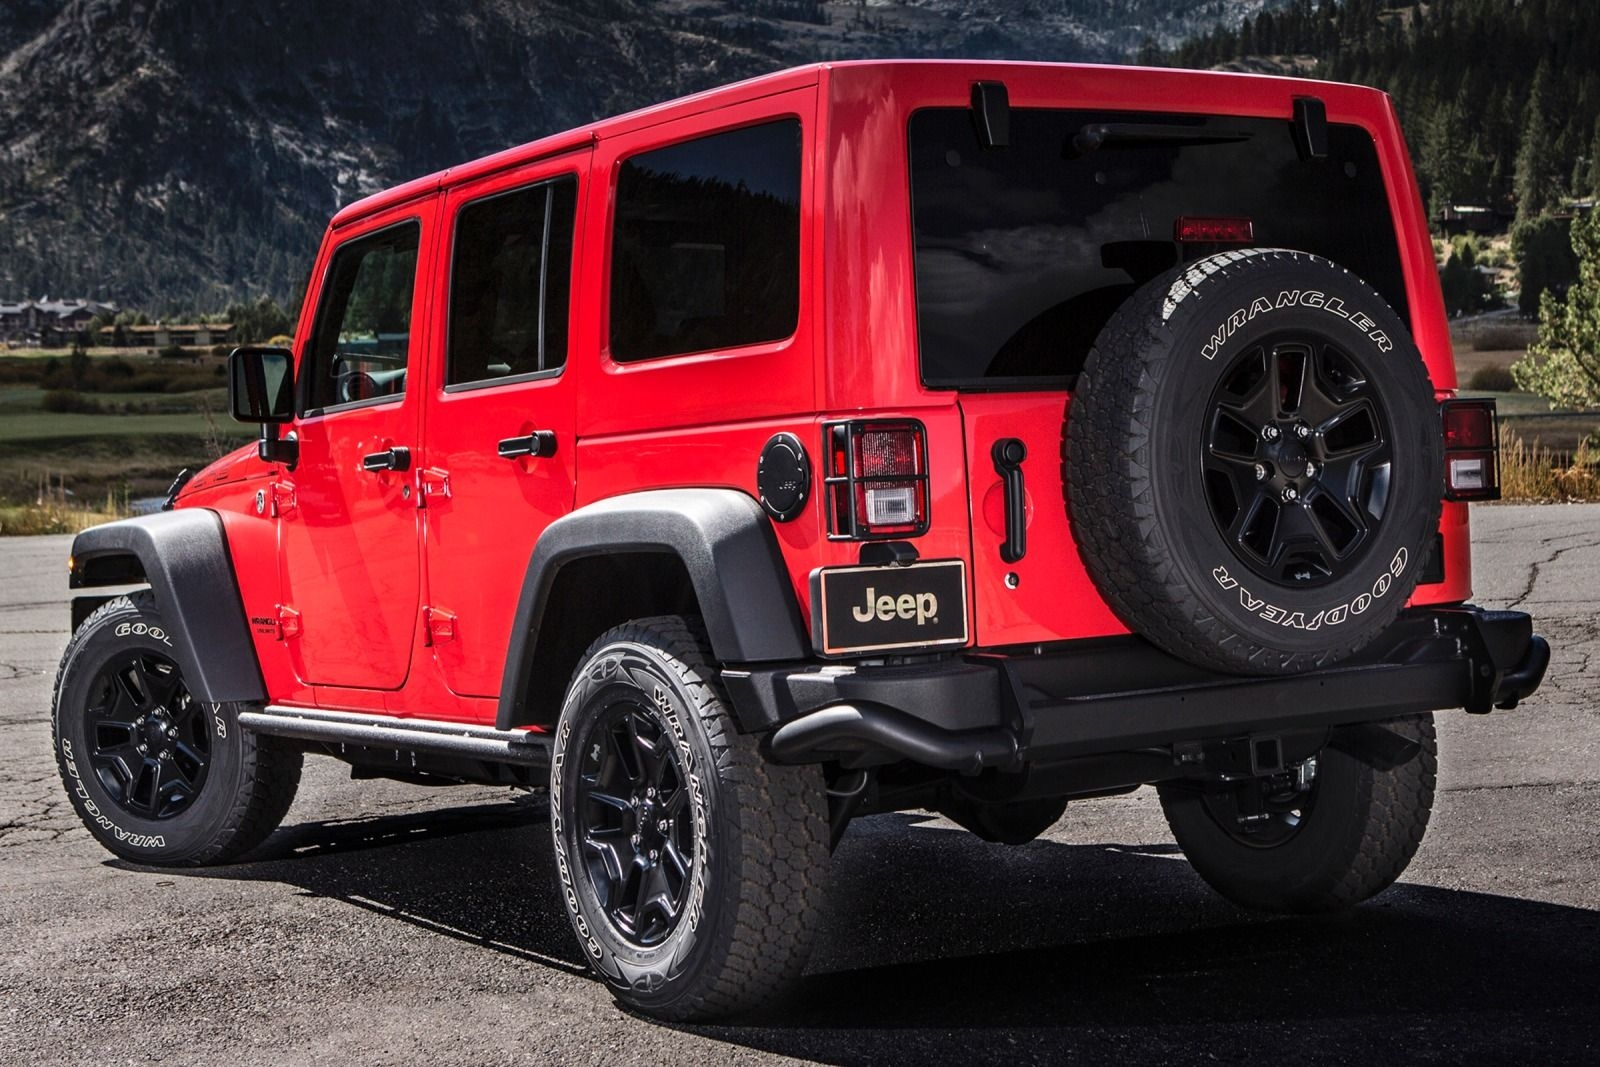 Jeep Wrangler Unlimited Invoice Price